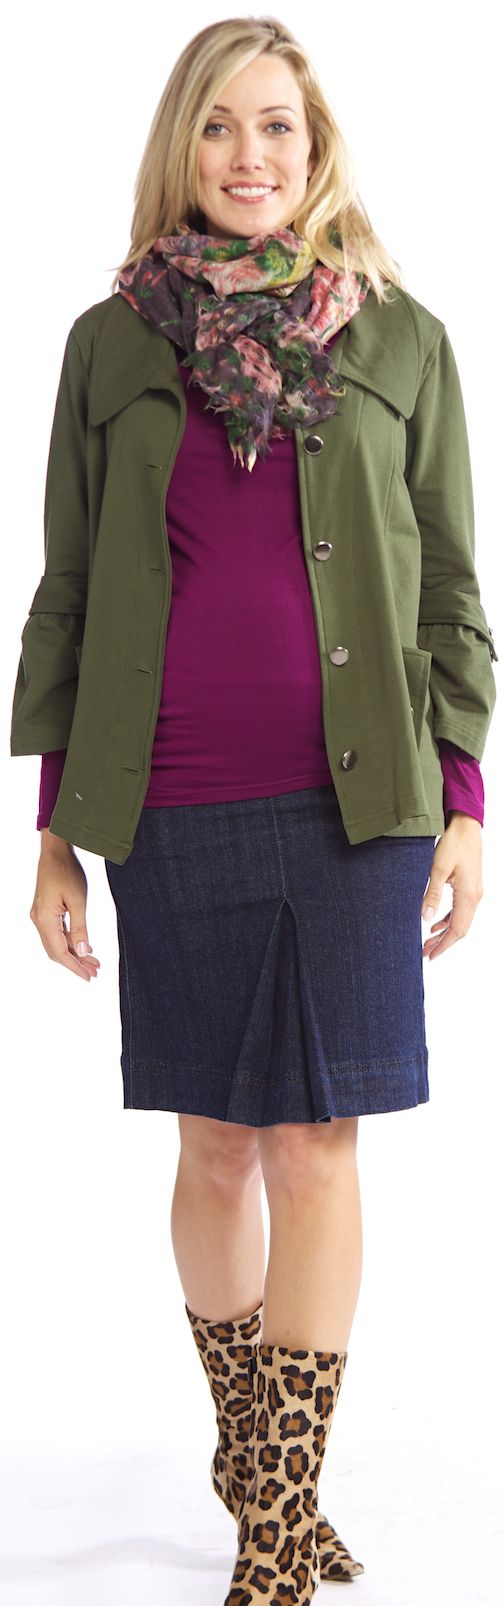 AFTER CHRISTMAS SALE www.duematernity.com  Everly Grey Drea Maternity Jacket | Maternity Clothes on Sale at Due Maternity